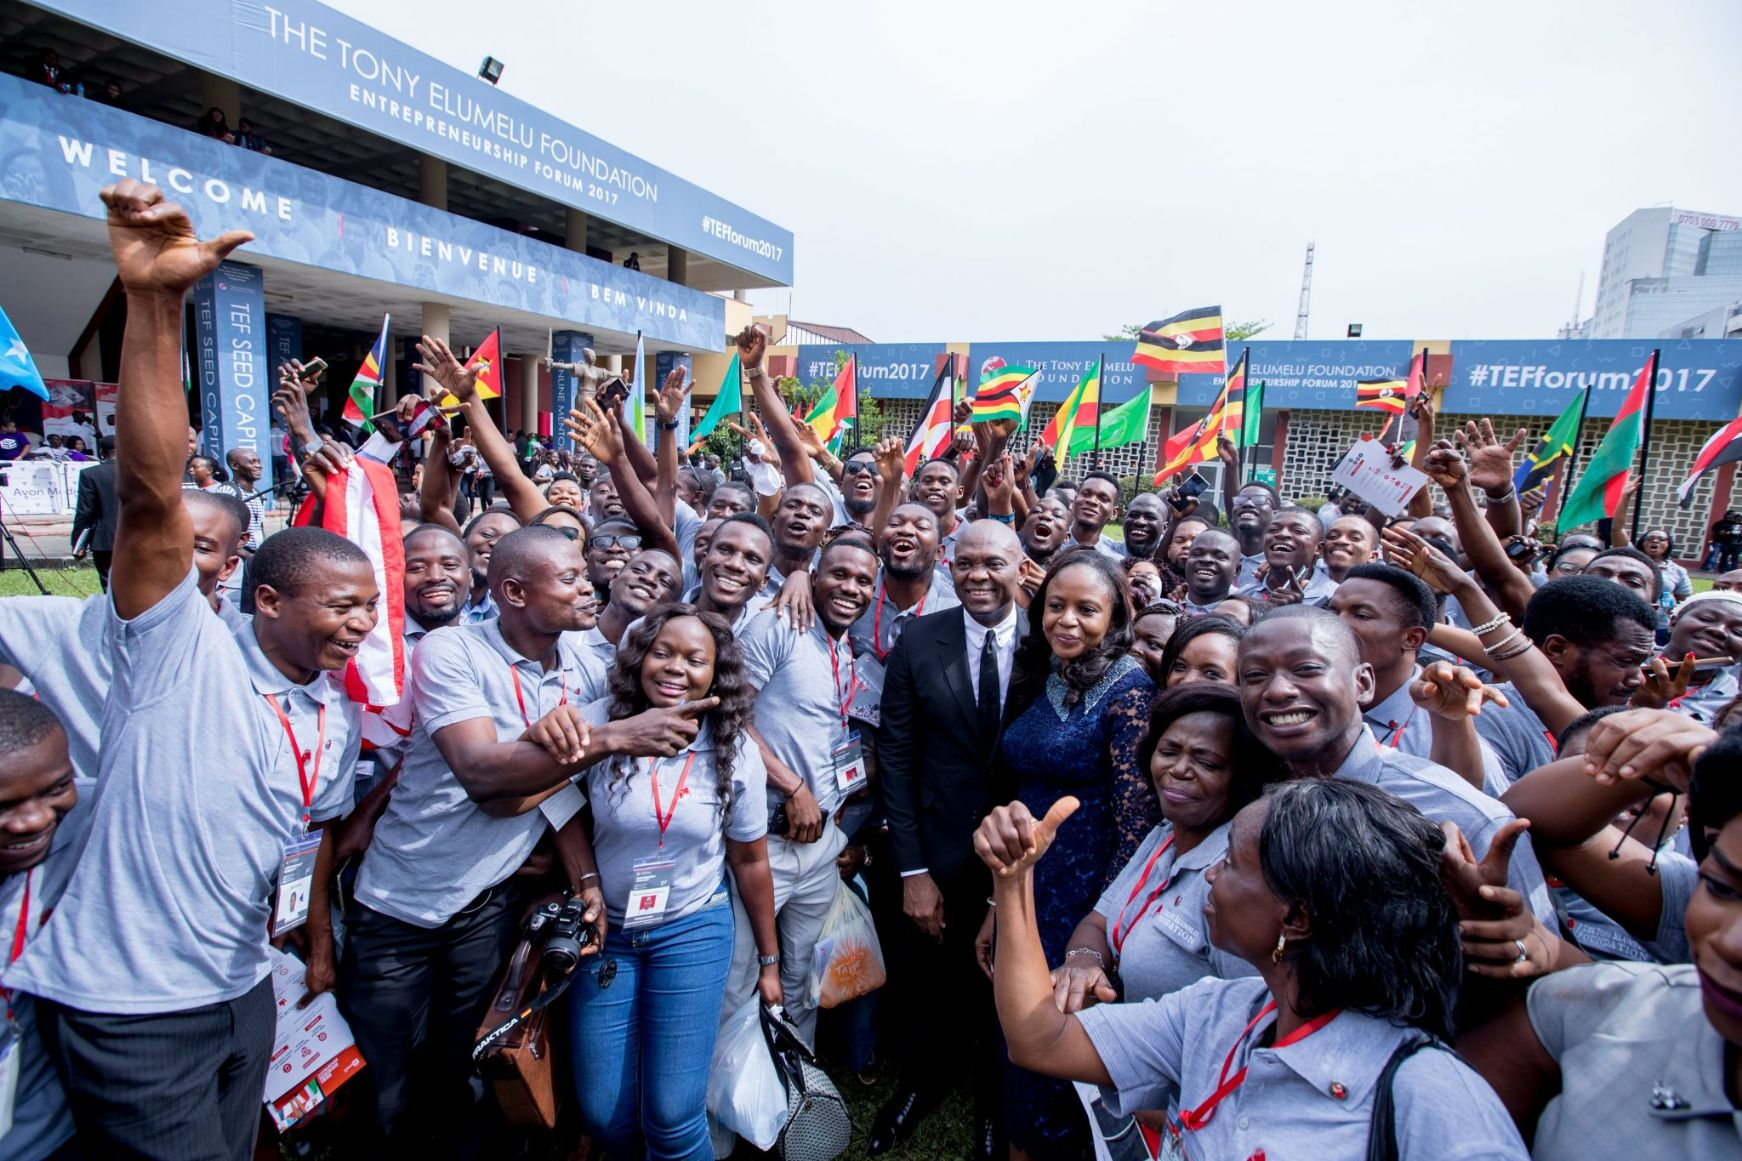 Heirs holdings Chairman, Tony Elumelu and Dr Awele Elumelu surrounded by African entrepreneurs at the 2017 TEF Forum